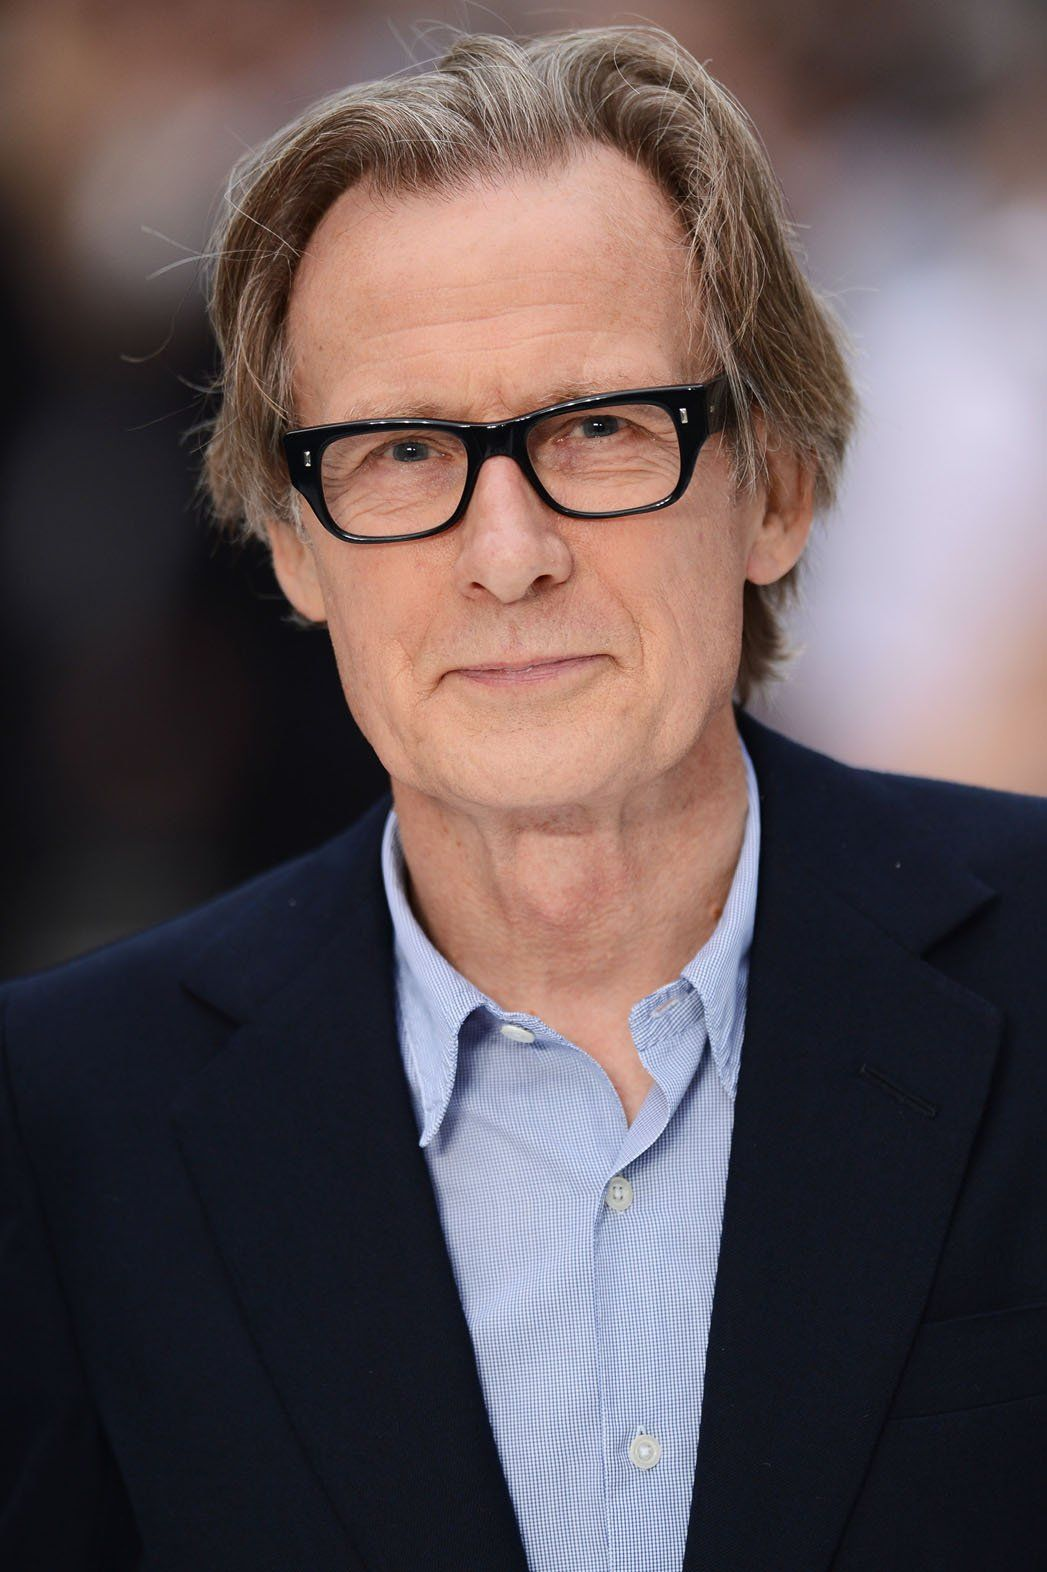 underwear Bill Nighy (born 1949) naked photo 2017